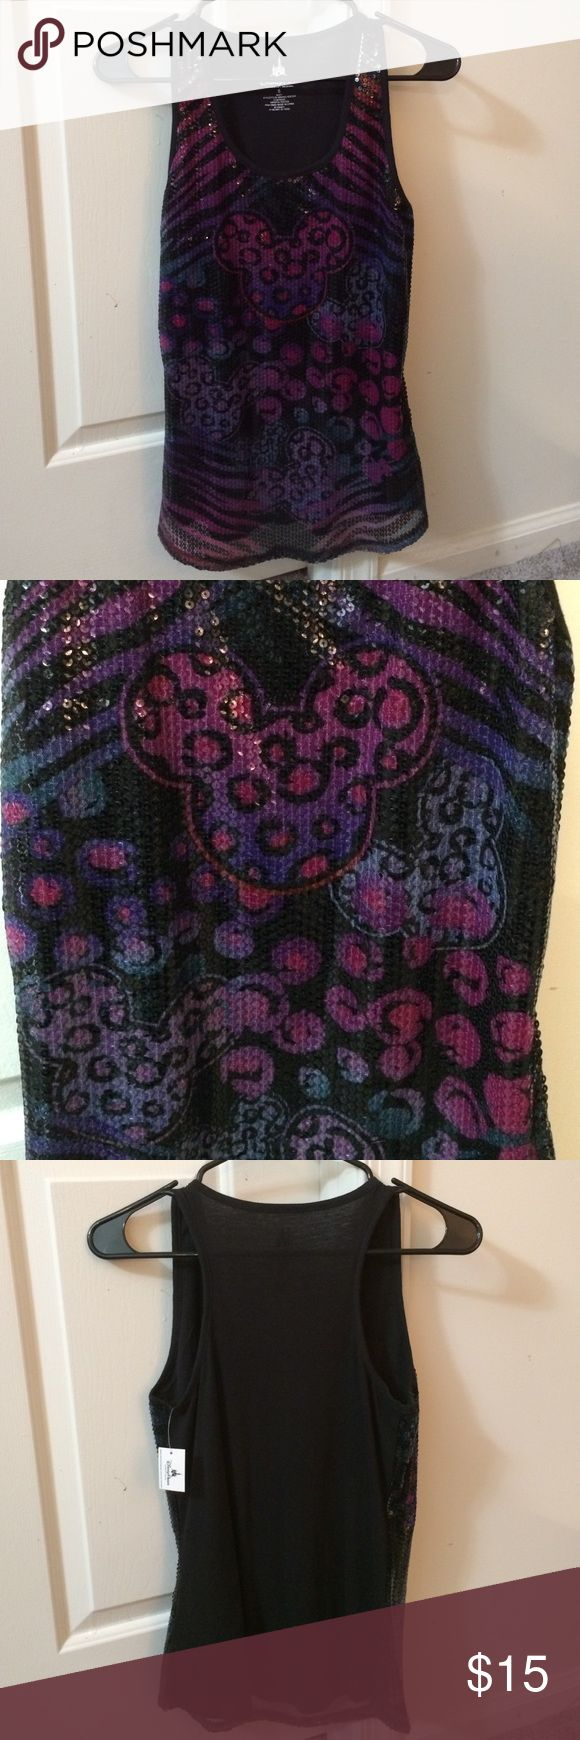 Official Disney Sequin Tank Top Official Disney tank top from Disney World. NWT. Sequin with Mickey designs. Disney Tops Tank Tops